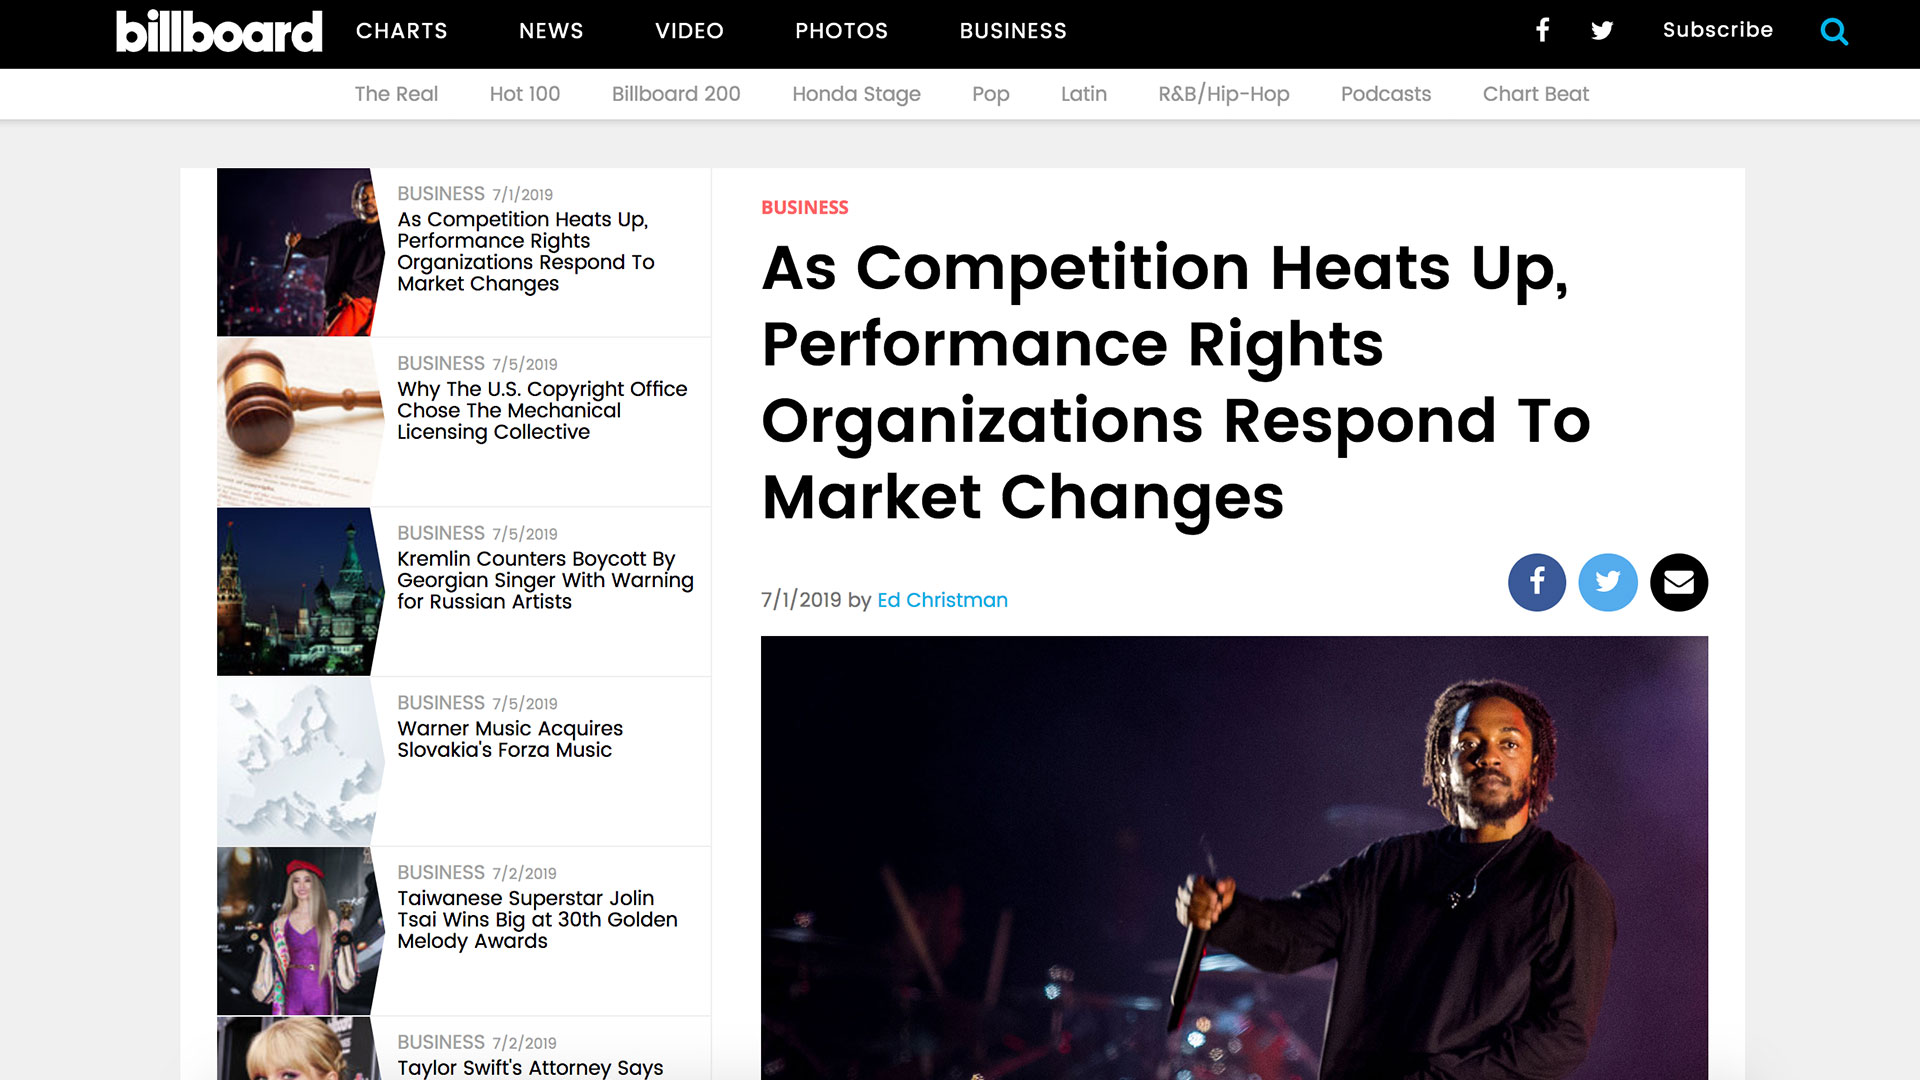 Fairness Rocks News As Competition Heats Up, Performance Rights Organizations Respond To Market Changes